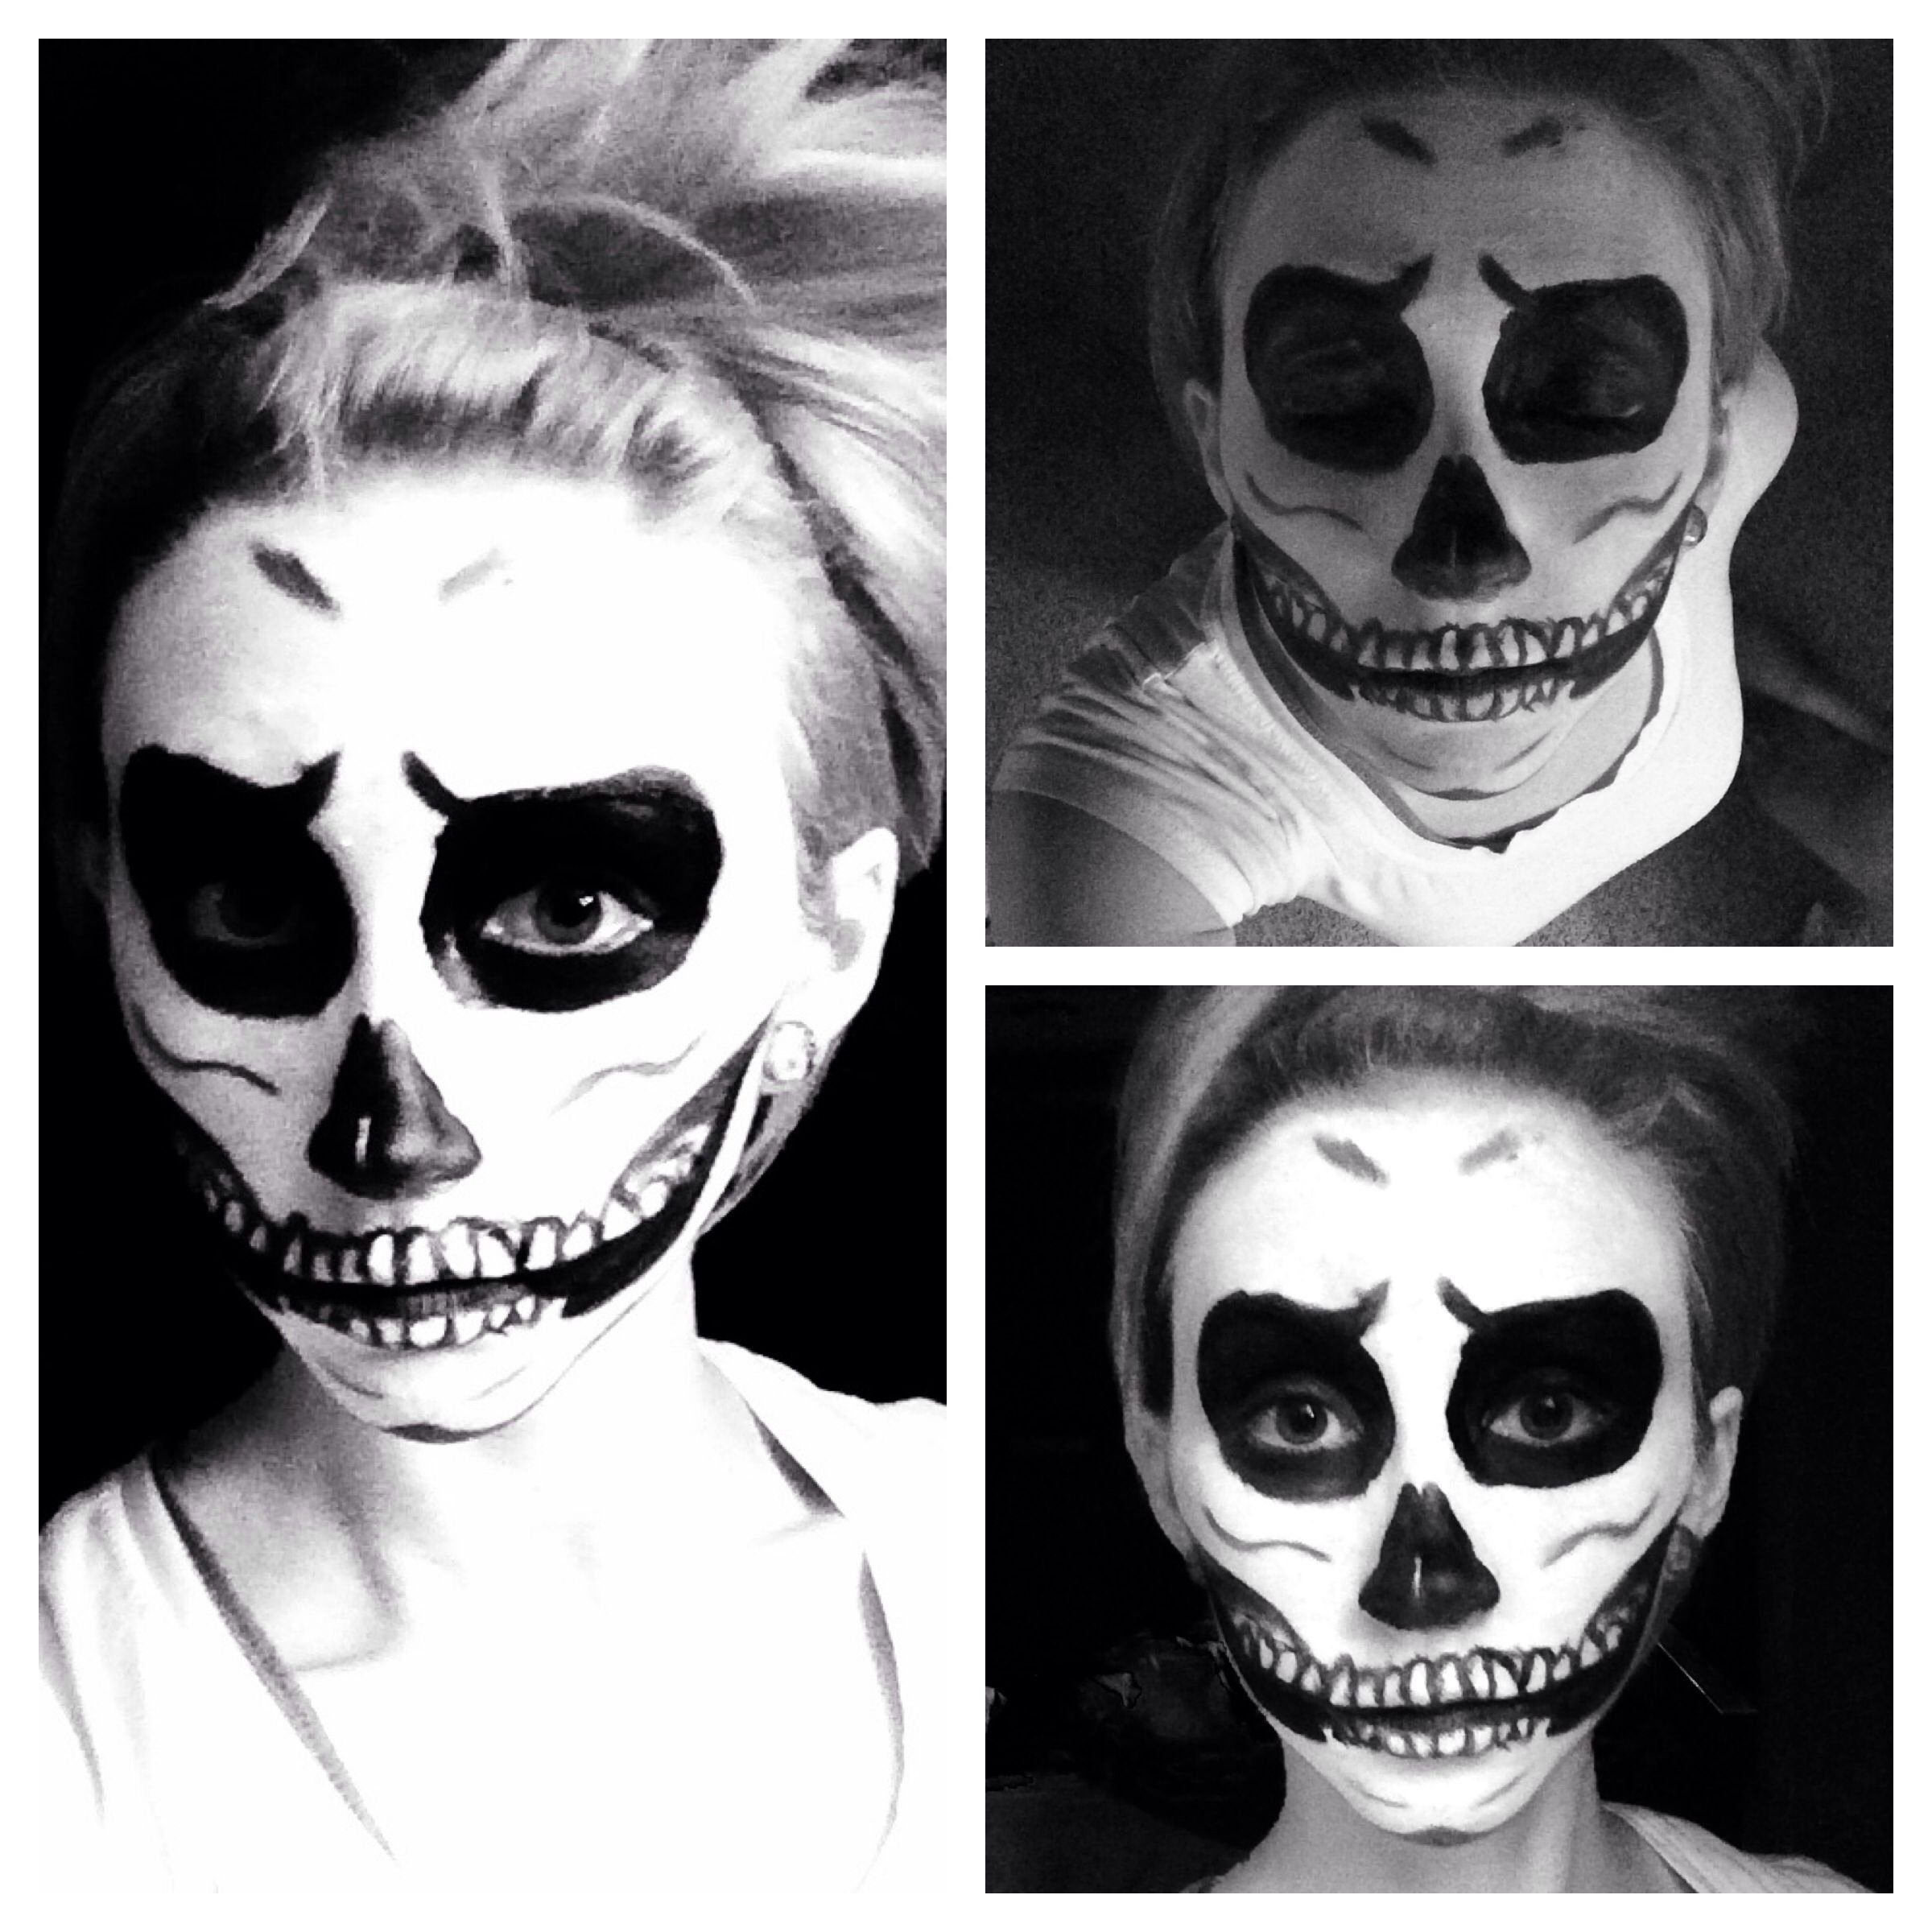 10 Wonderful Black And White Face Paint Ideas For Halloween skull skeleton makeup halloween costume cosplay idea easy black 2020